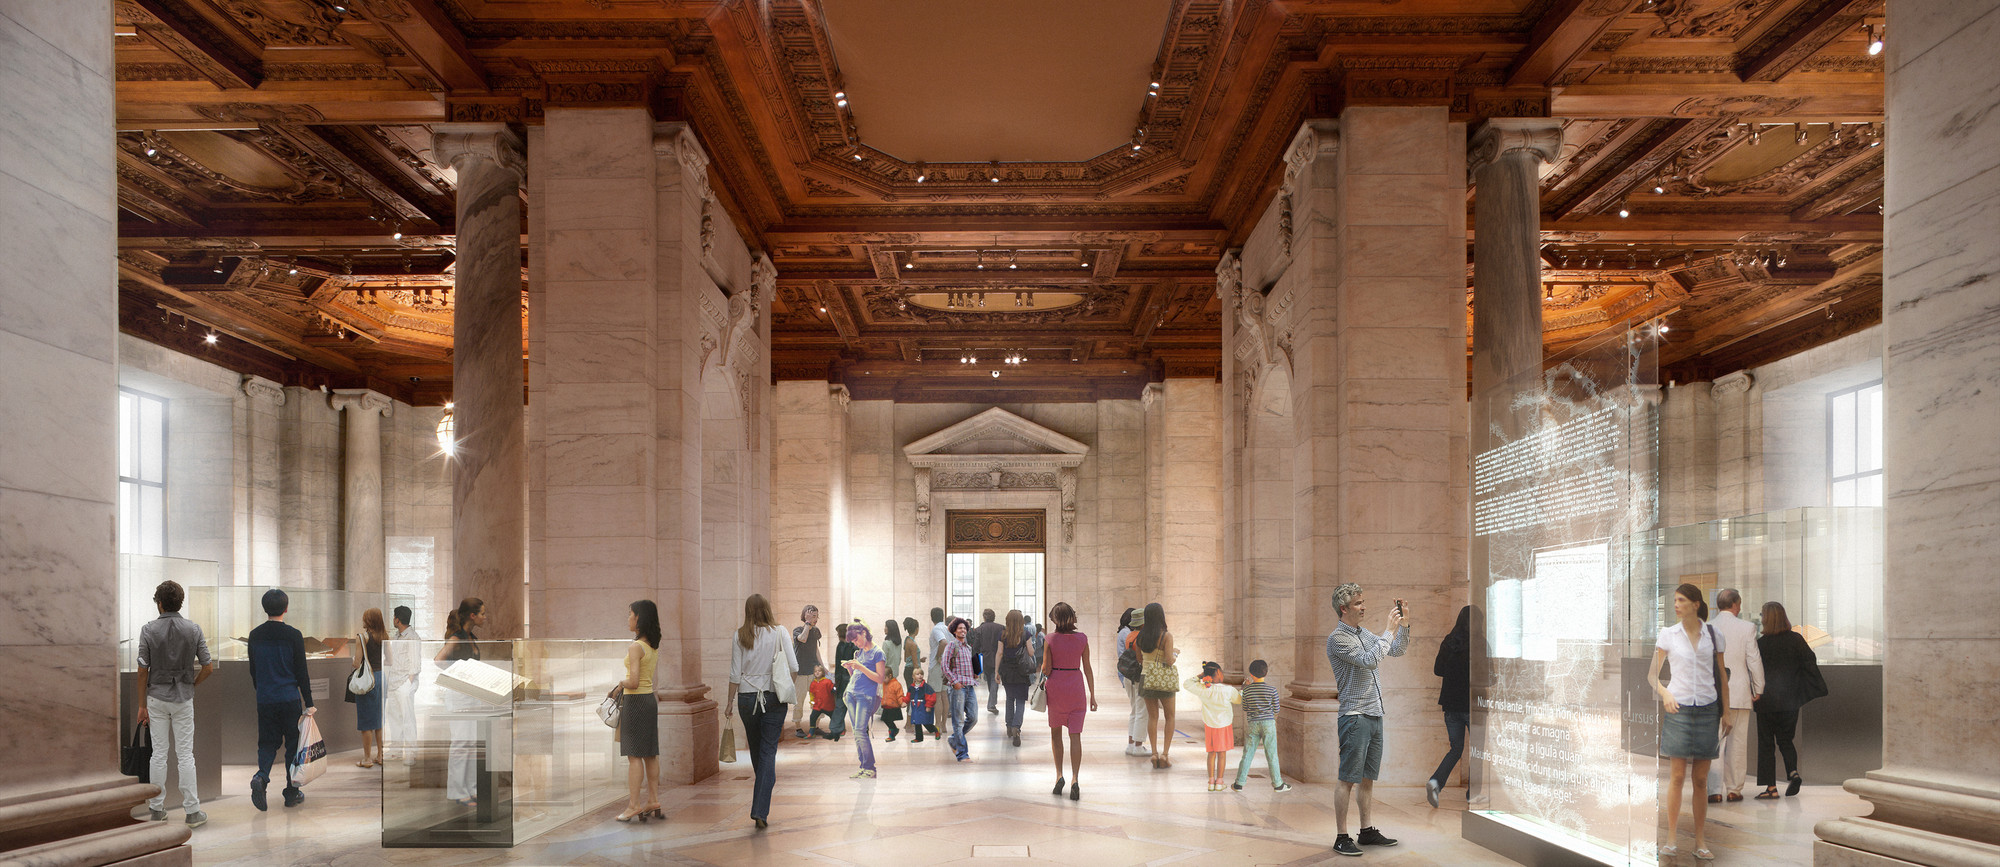 Foster + Partners' New York Public Library Redesign in State of ...